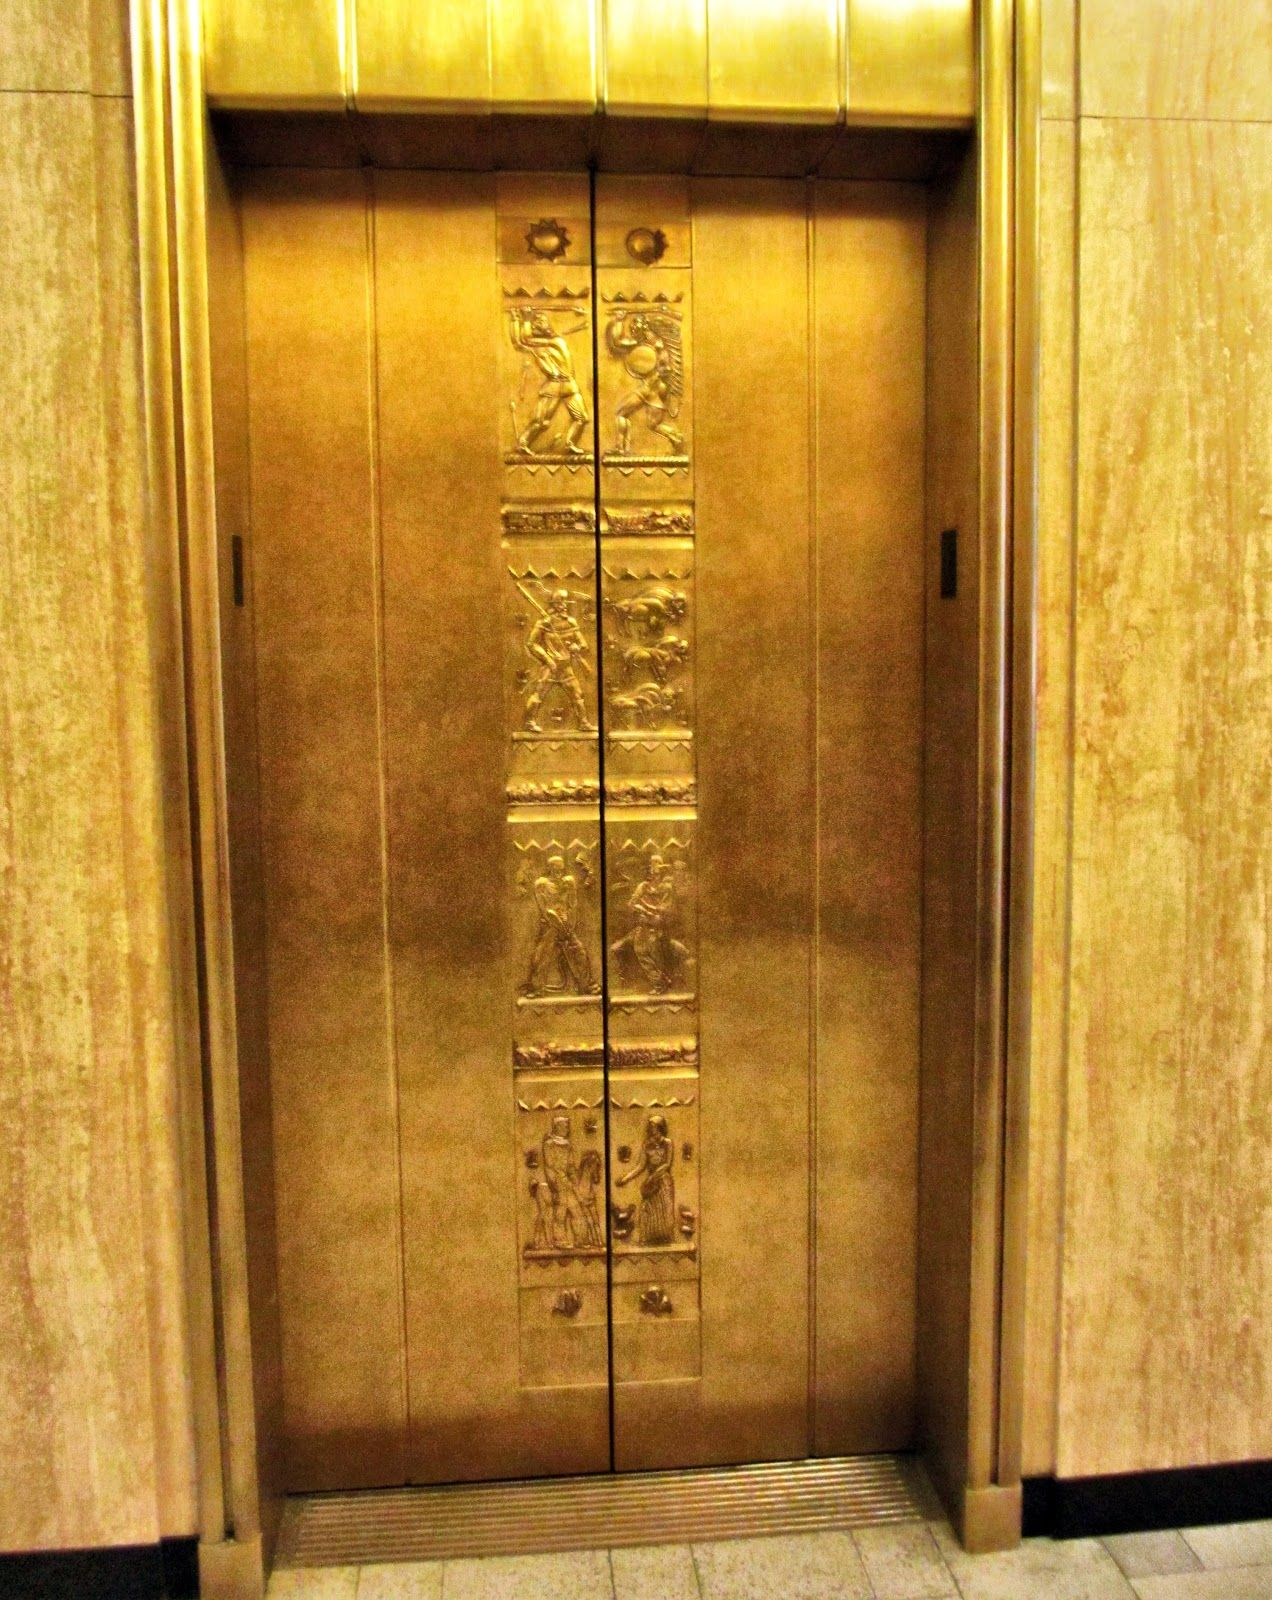 Le Meilleur Art Deco Elevator Doors Google Search Art In 2019 Ce Mois Ci